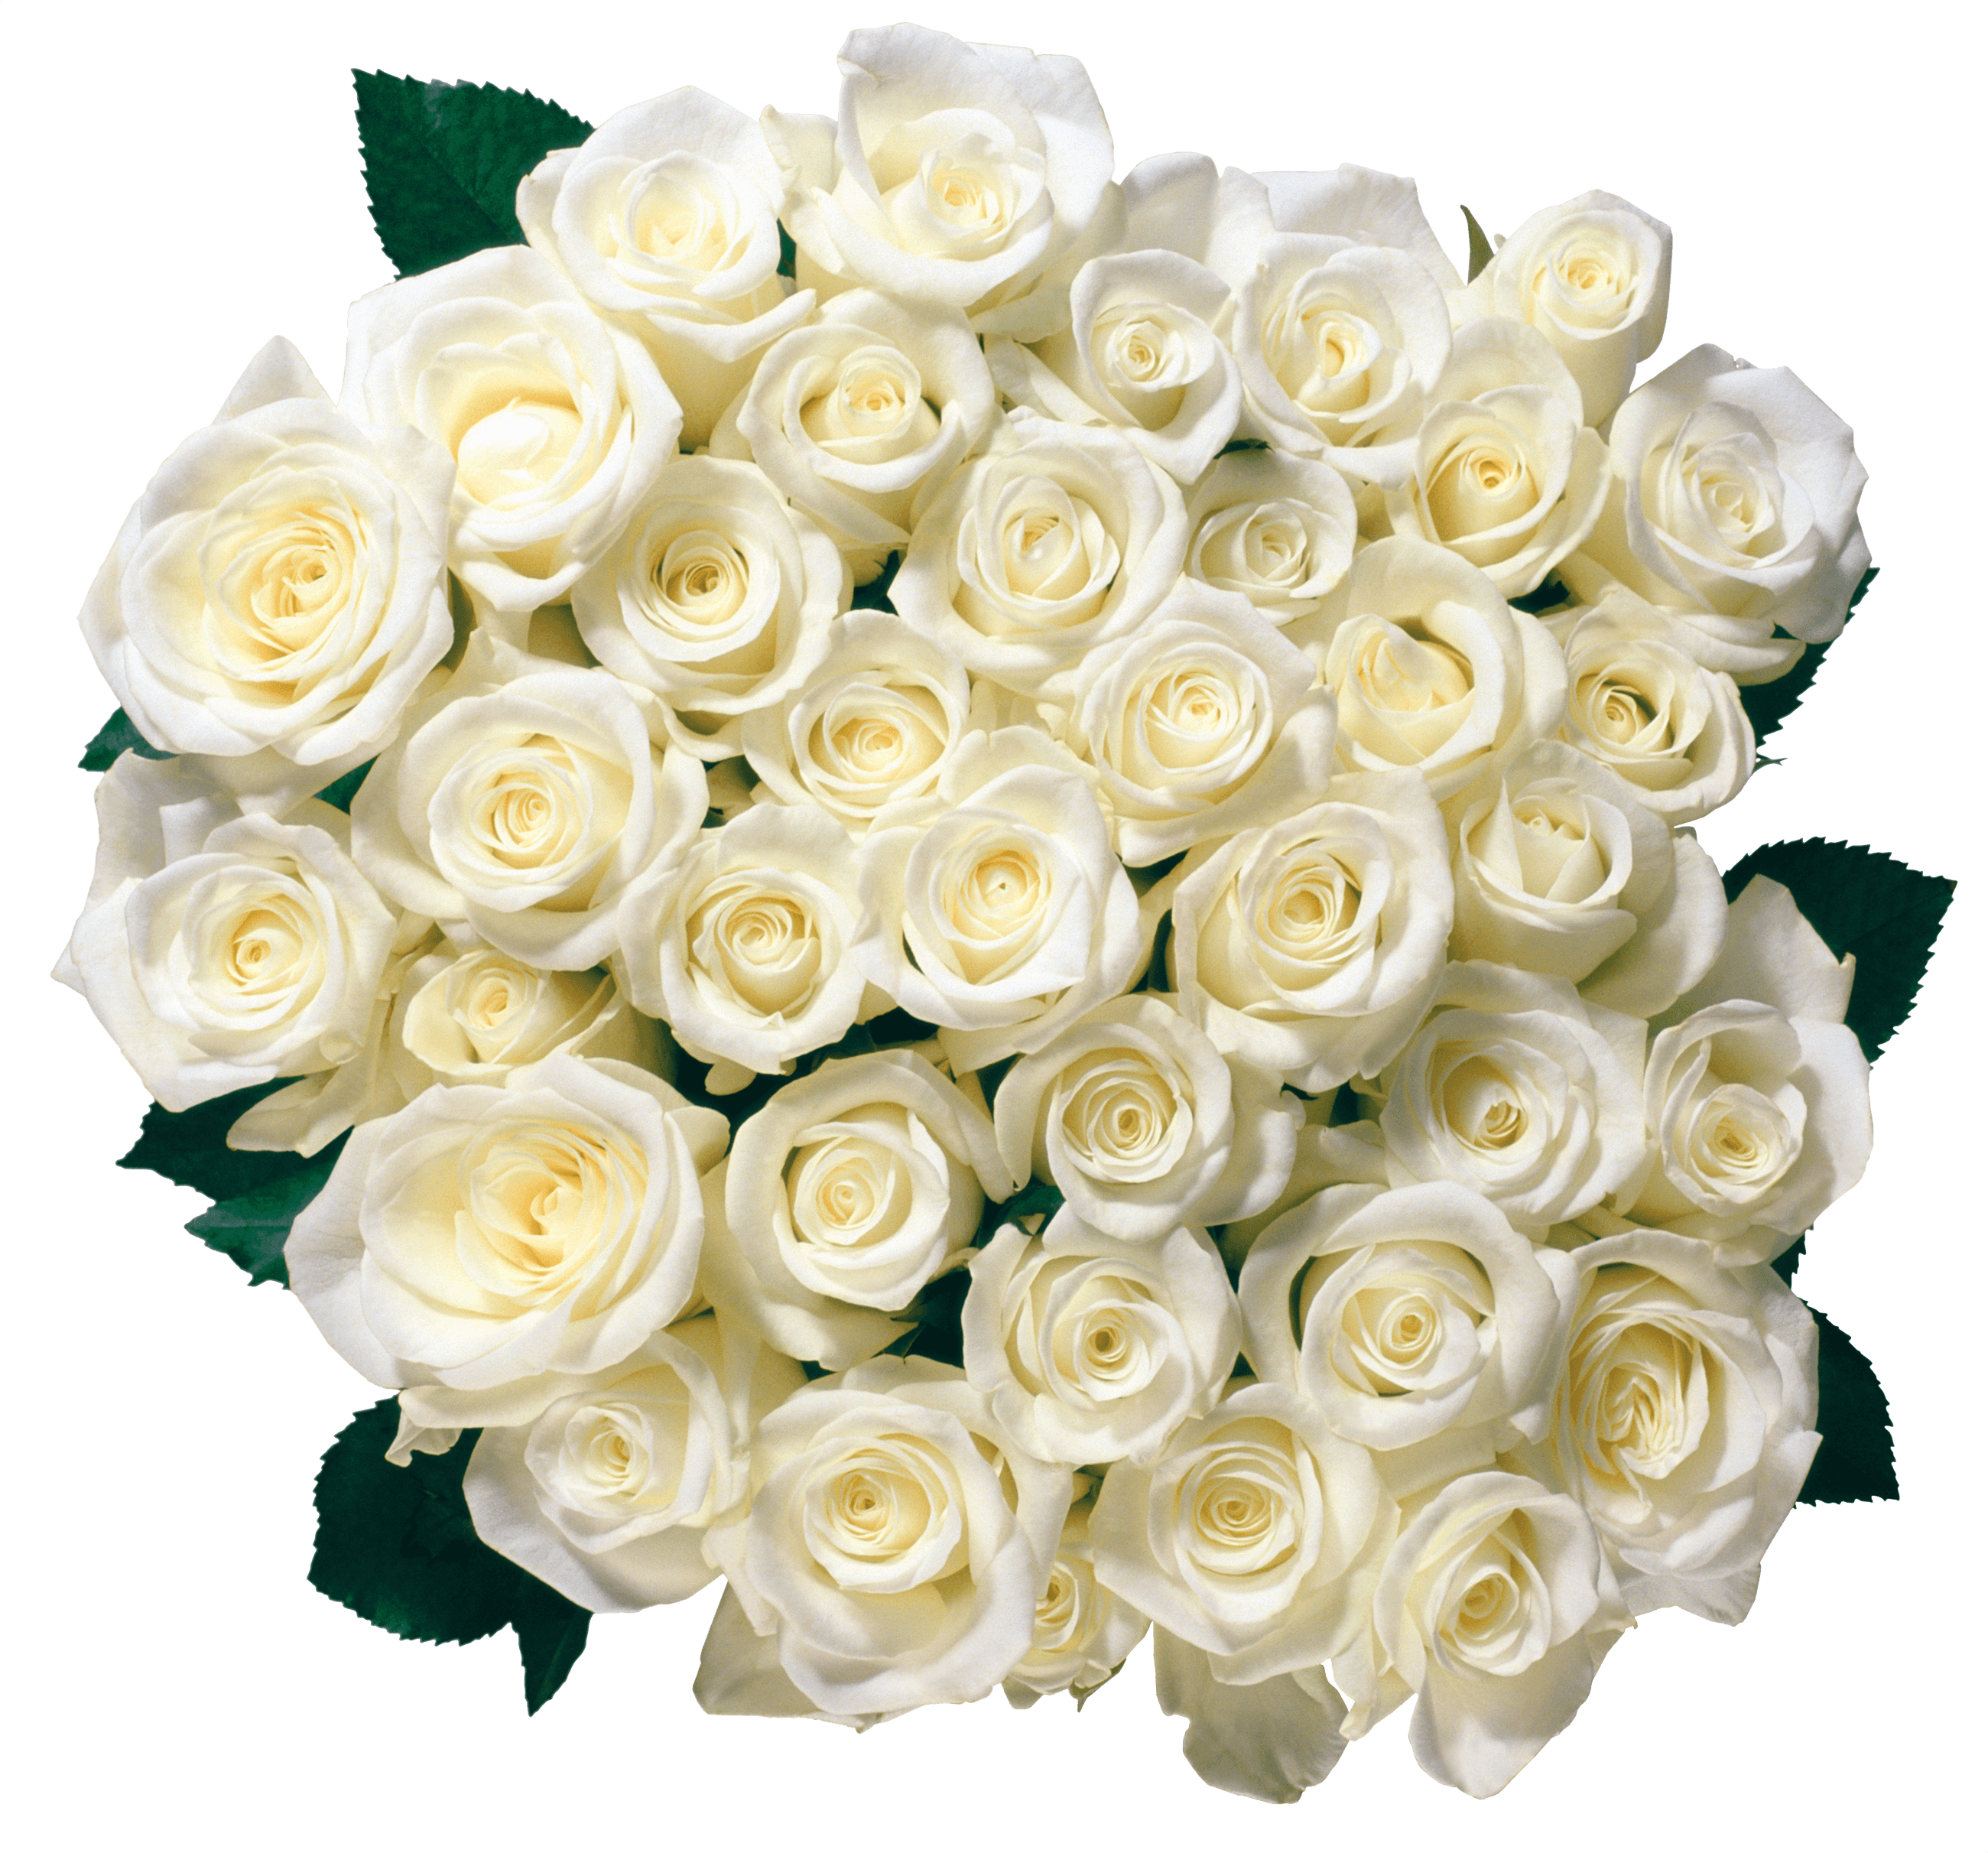 Bouquet Of White Roses Transparent Png Stickpng